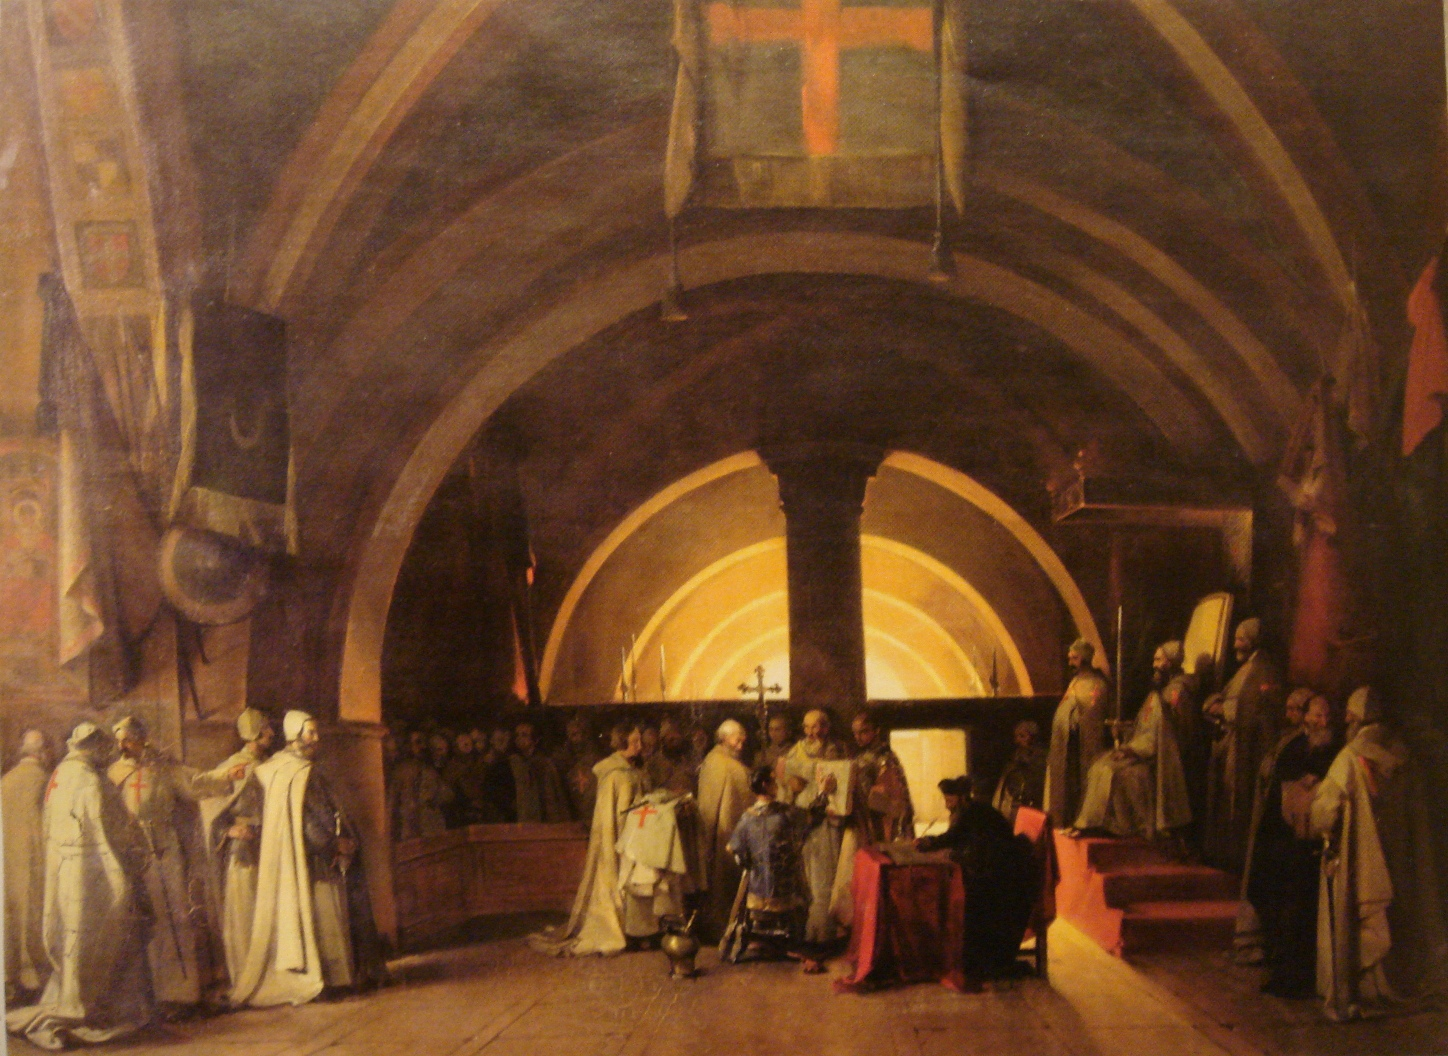 http://upload.wikimedia.org/wikipedia/commons/a/a7/Ordination_of_Jacques_de_Molay_in_1265_at_the_Beaune_commandery_by_Marius_Granet_1777_1849.jpg